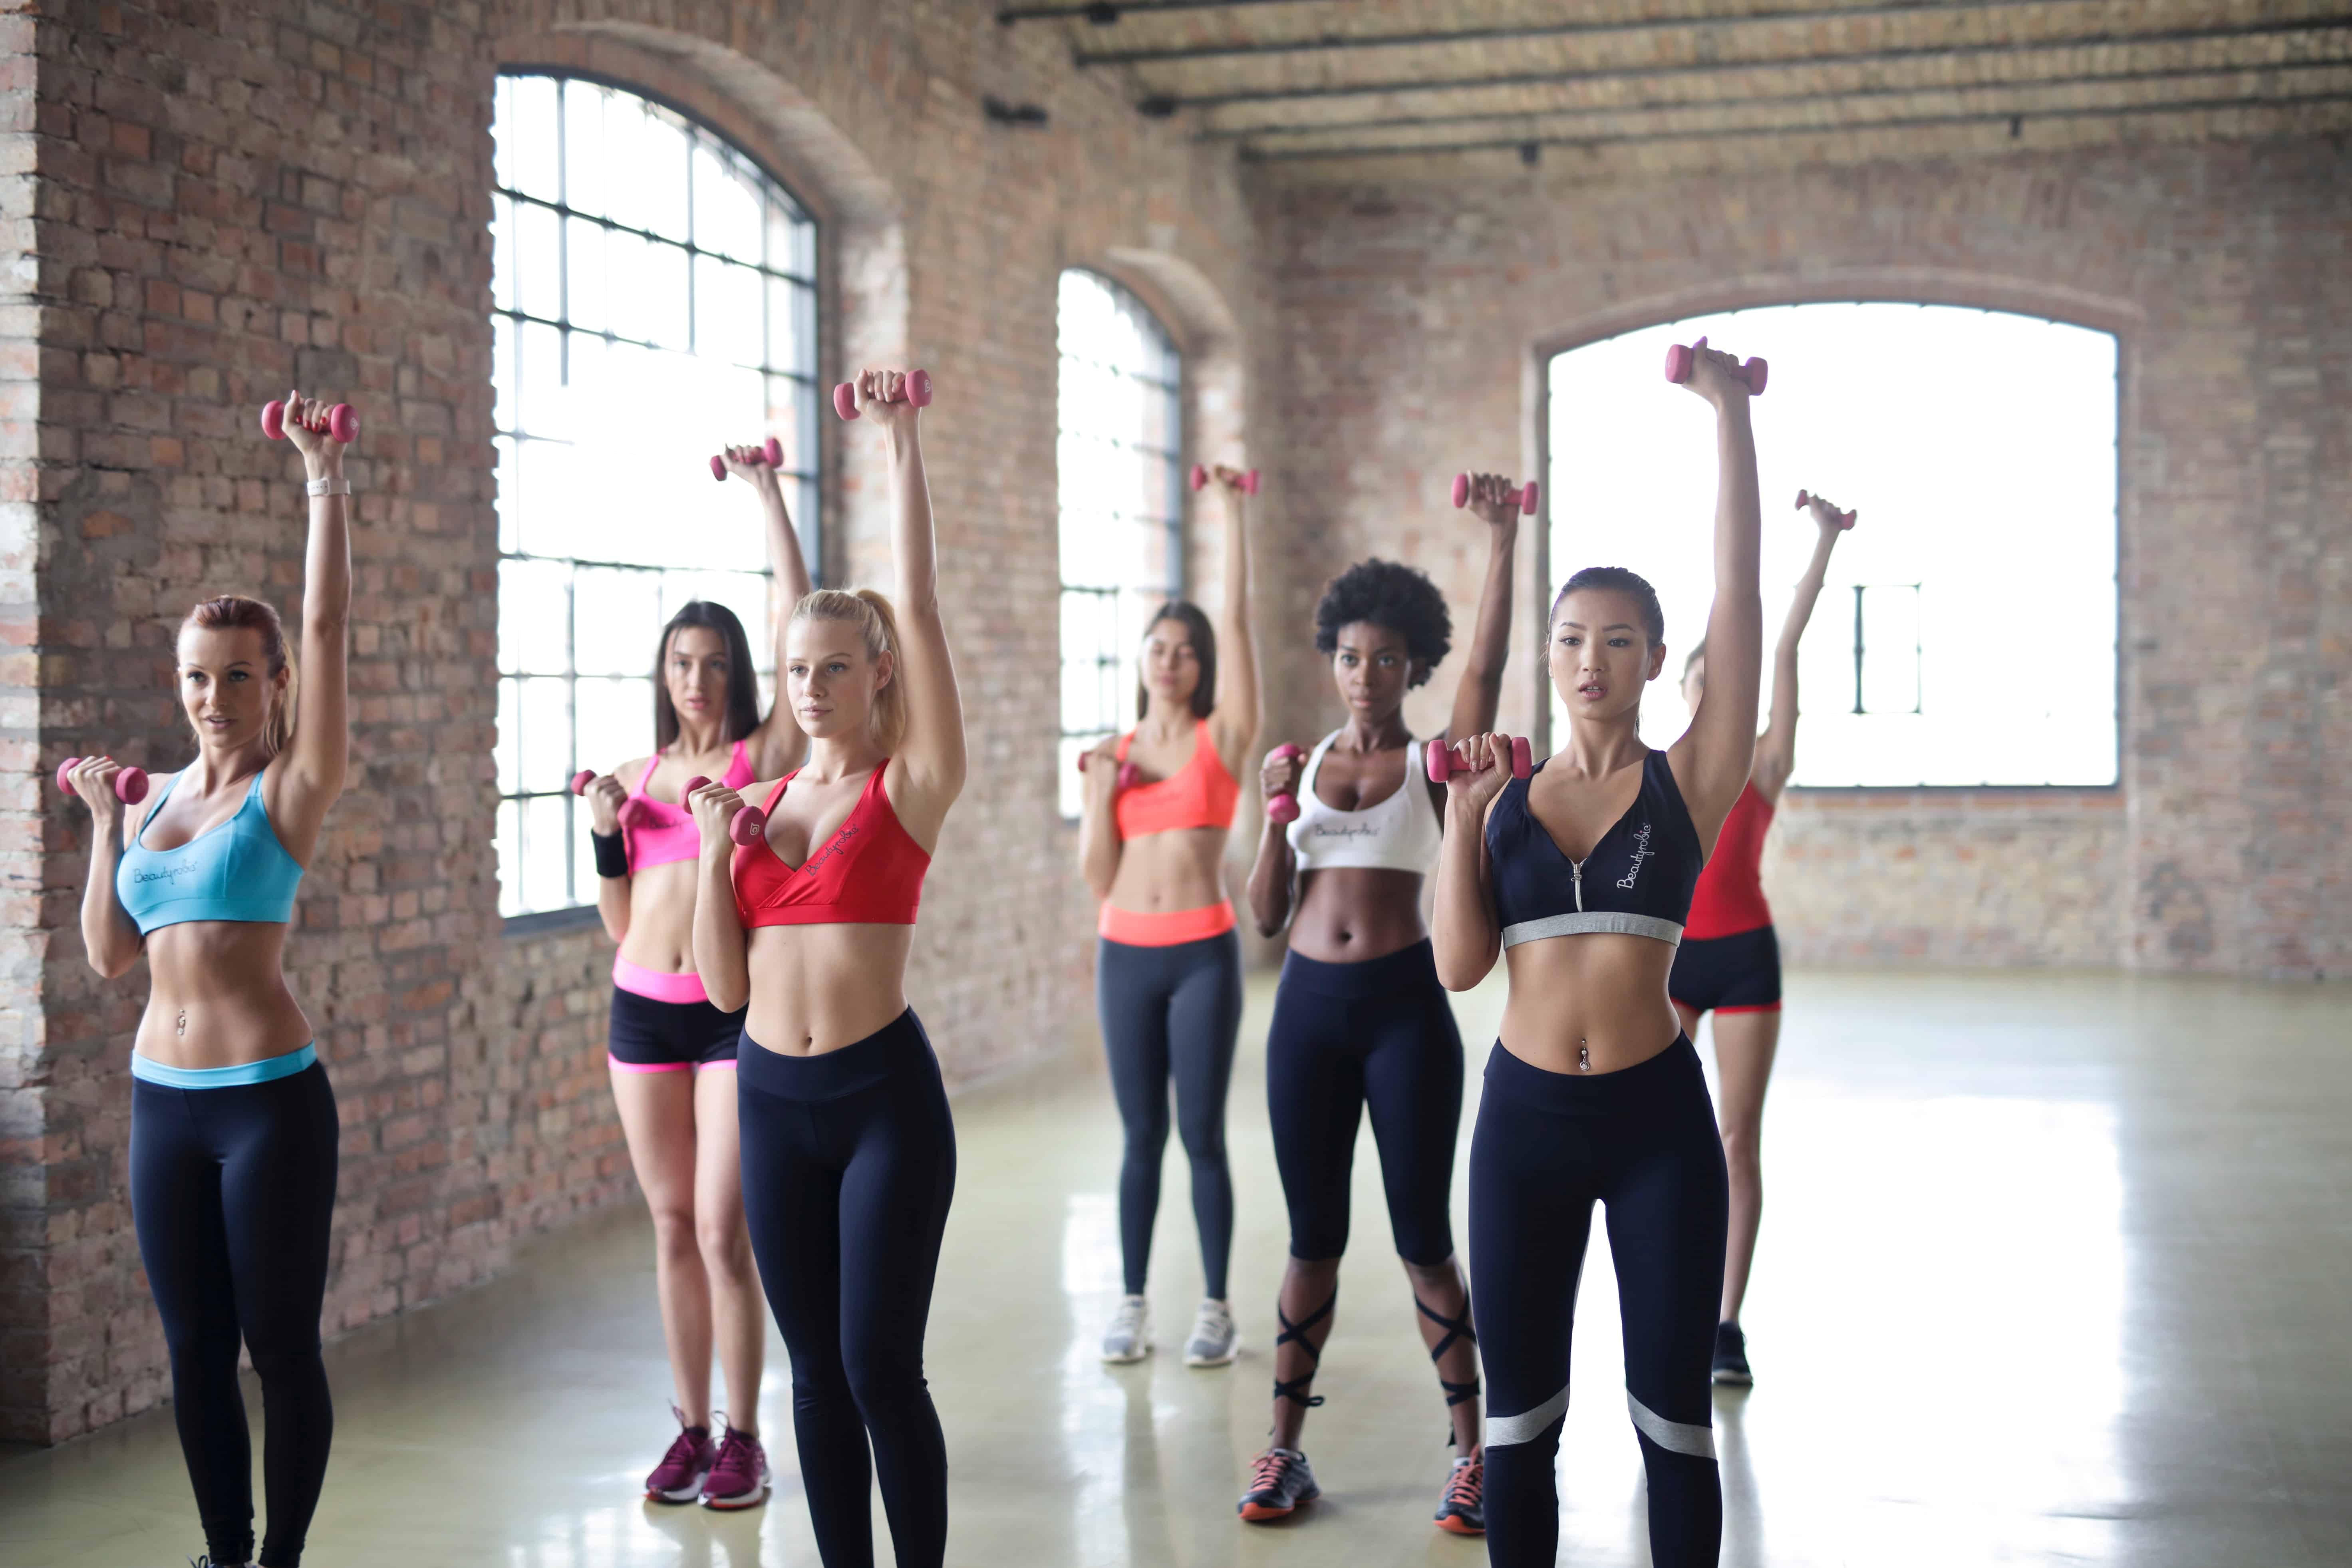 A group of women exercising together.